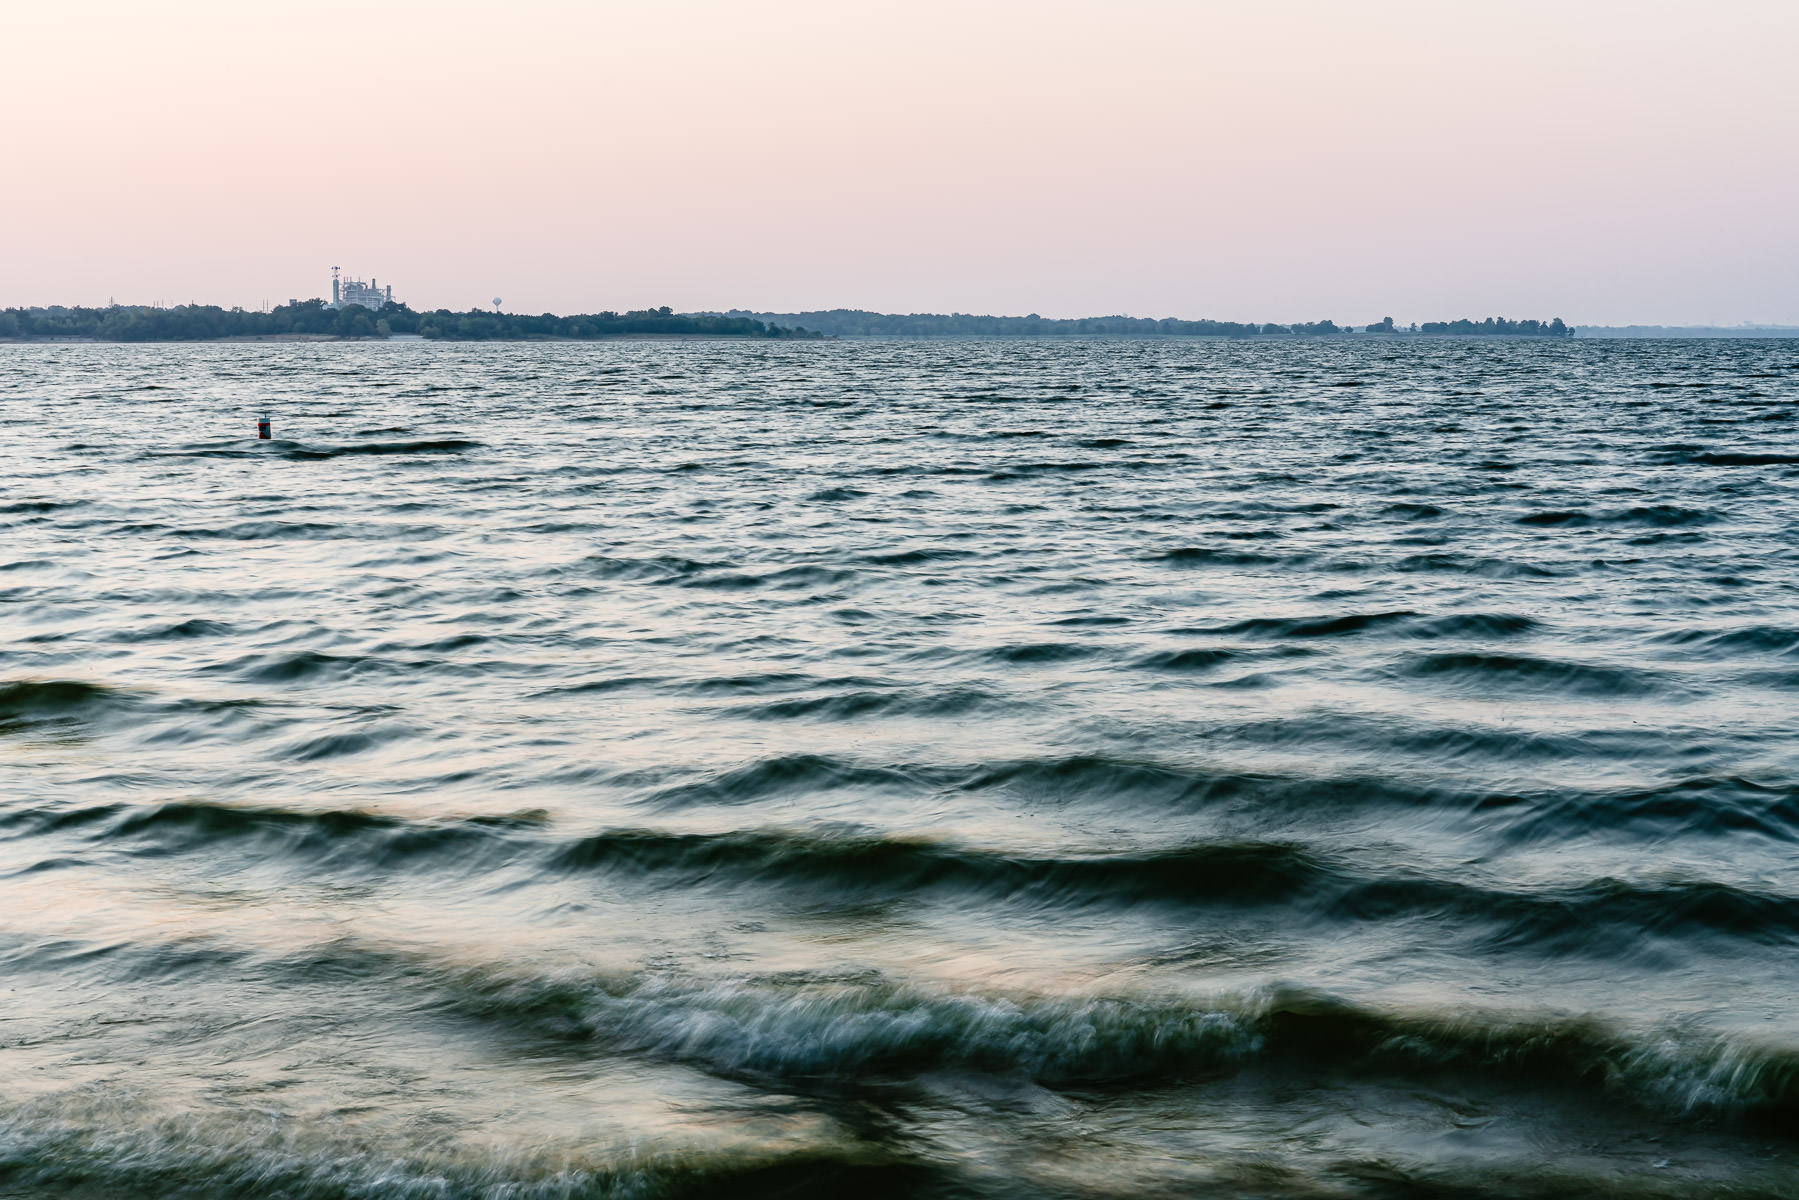 The Garland City Power Plant sits on the far shore of Texas' Lake Lavon.